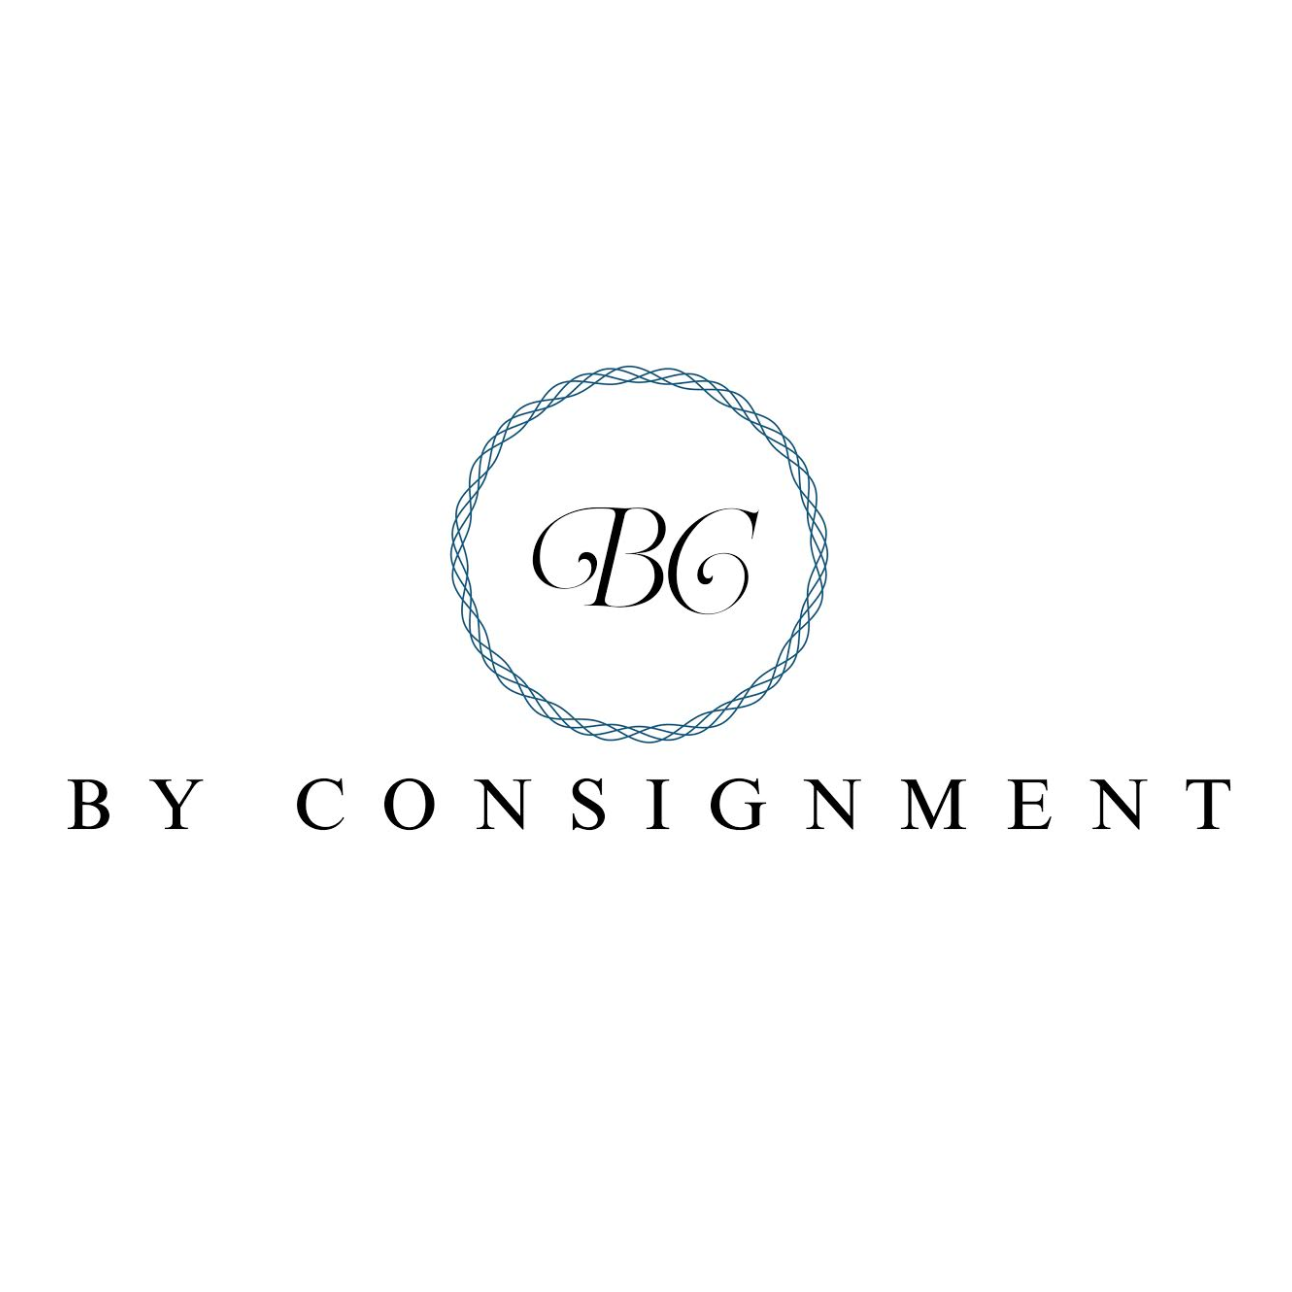 (c) Byconsignment.ca